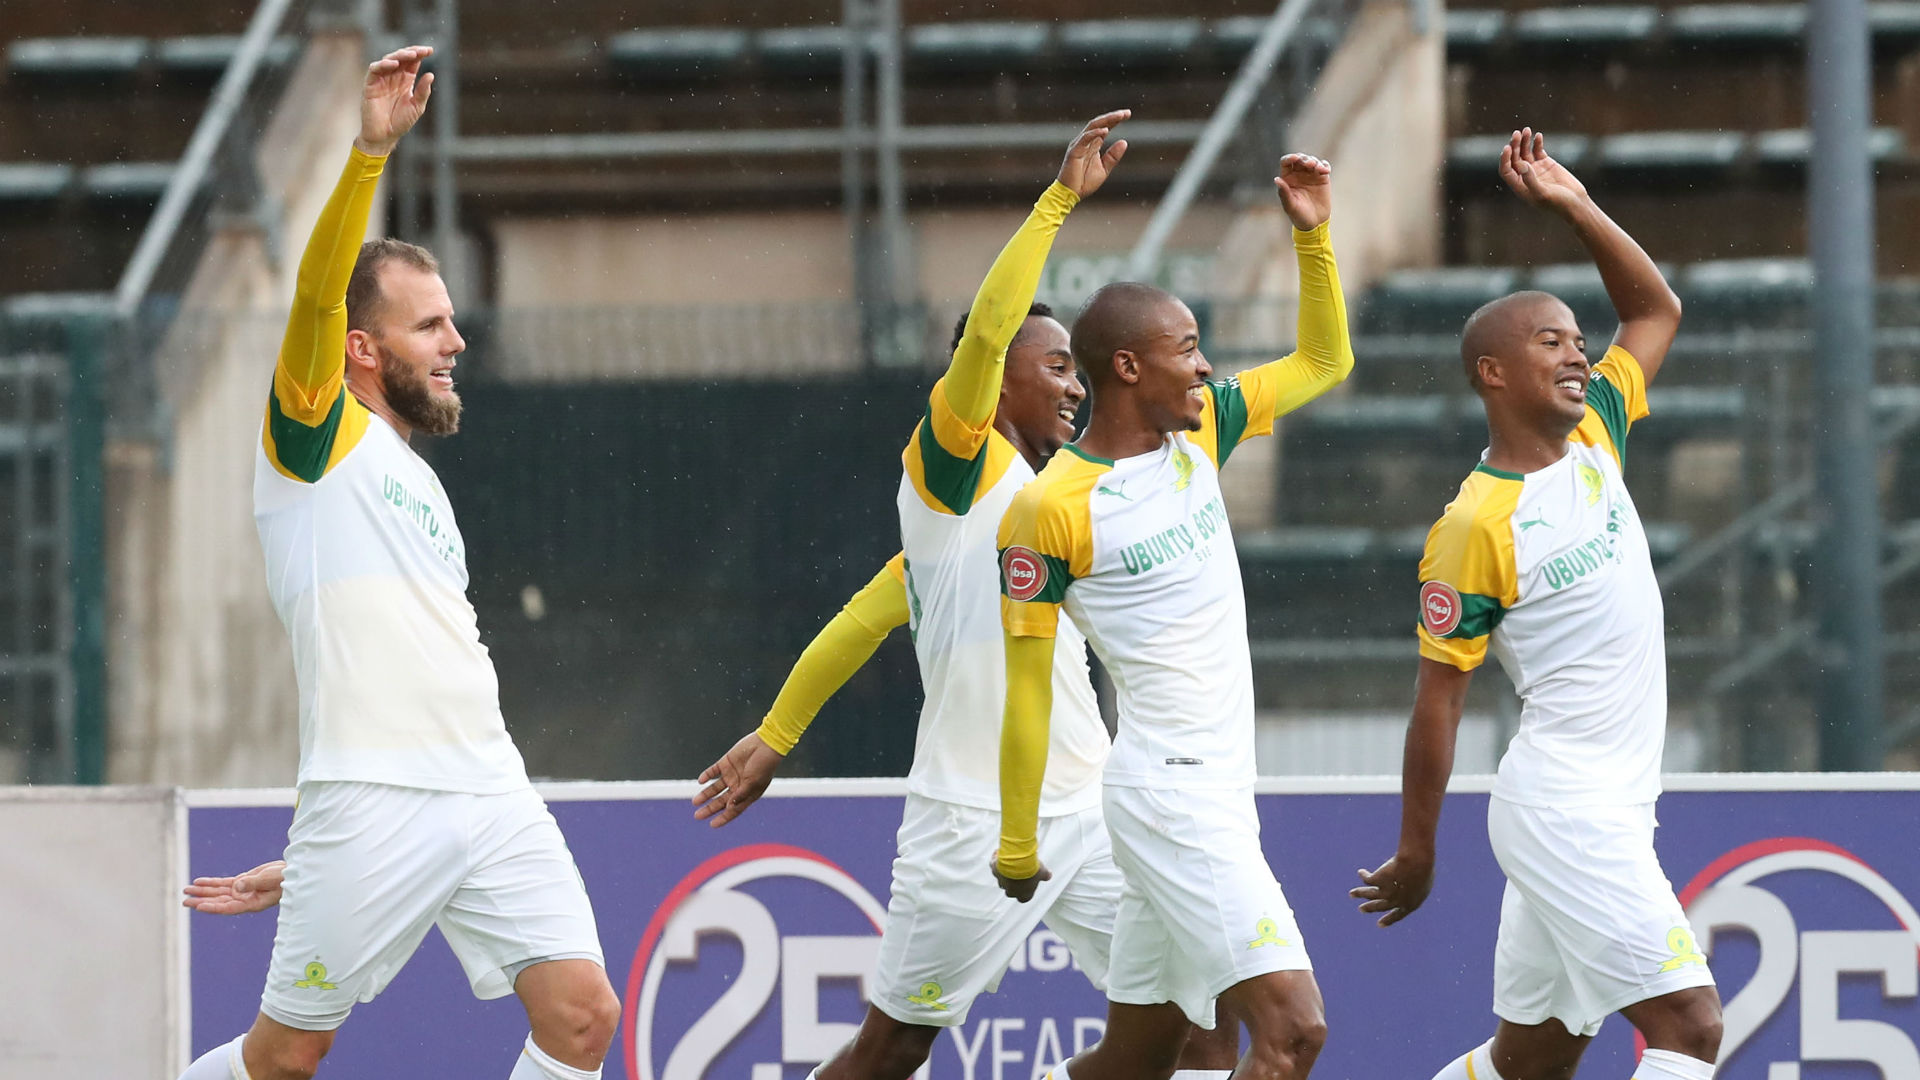 Sundowns celebrate Tshwane Derby win over SuperSport United, December 2, 2018